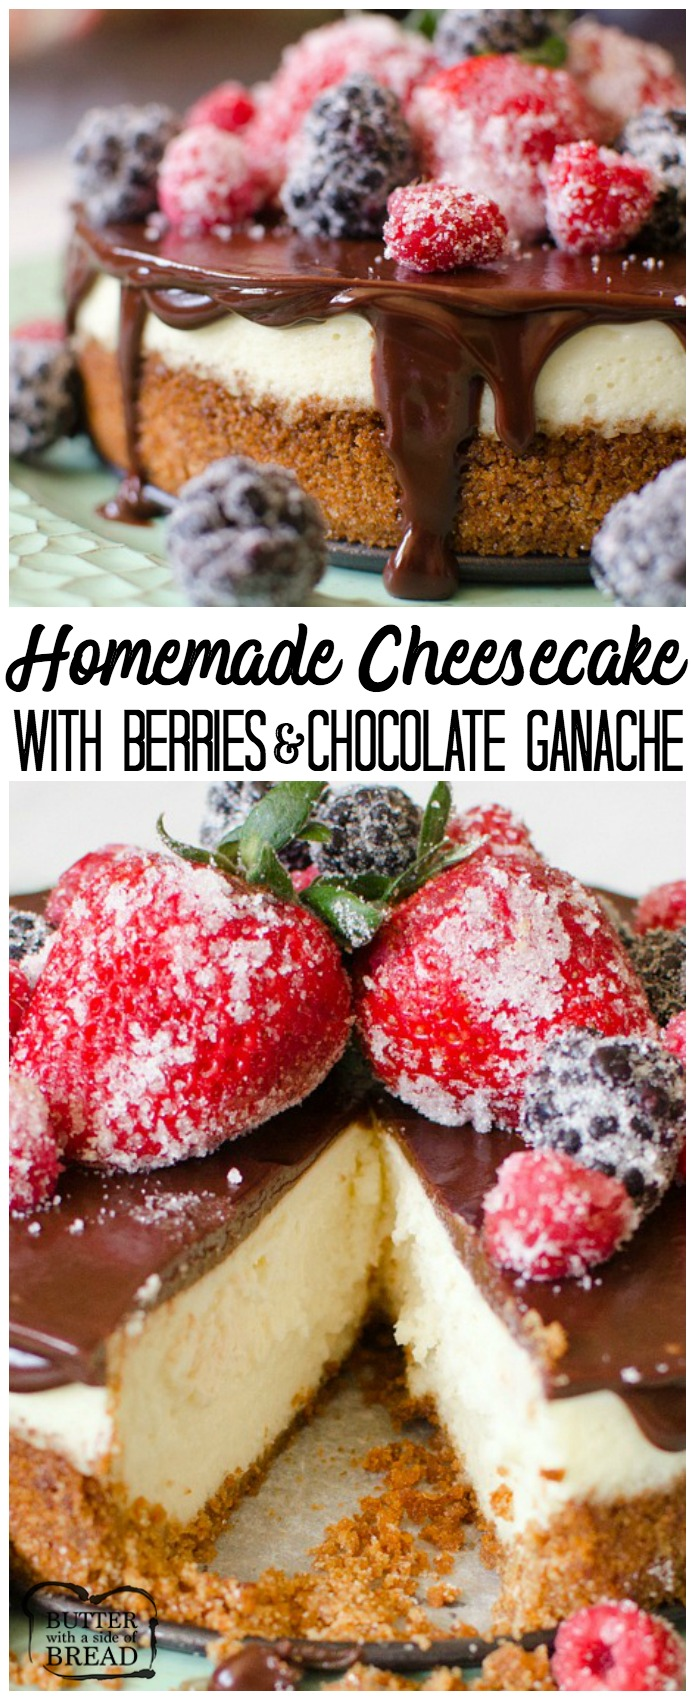 Cheesecake with Berries & Chocolate Ganache is a creamy, homemade, six-inch cheesecake topped with a rich chocolate ganache. The Cheesecake is garnished with sugared berries that give this classic dessert a bright, fresh flavor.